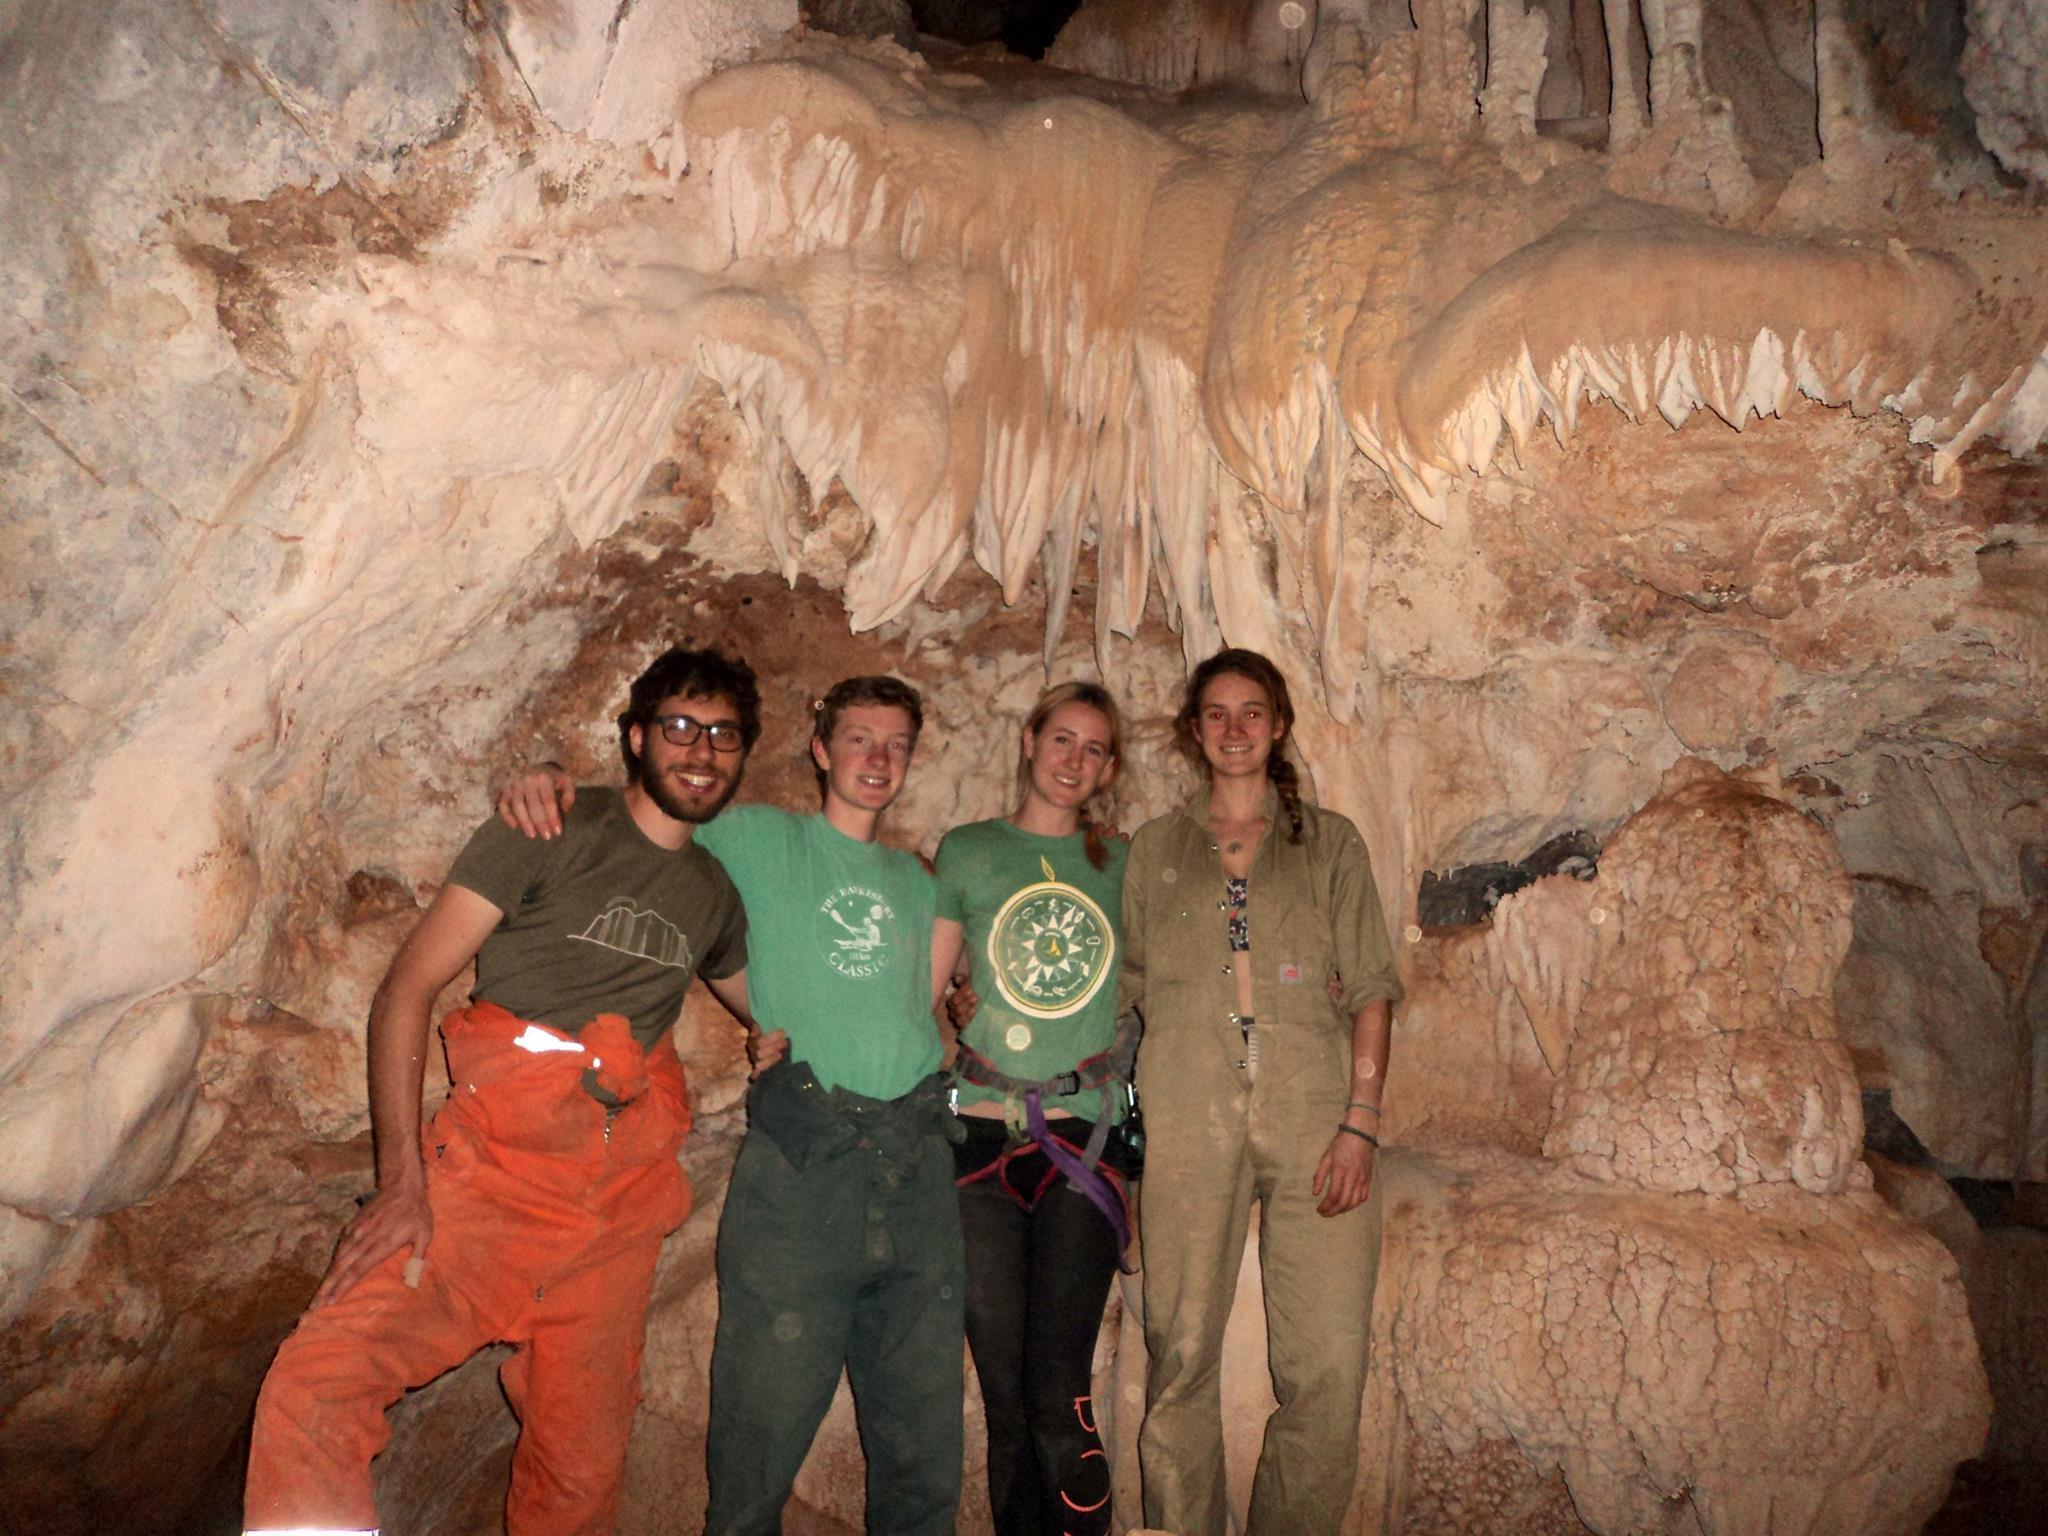 Attempting a group shot in Crocodile Pot only to realise how difficult it is to capture the beauty of a cave in a photo.